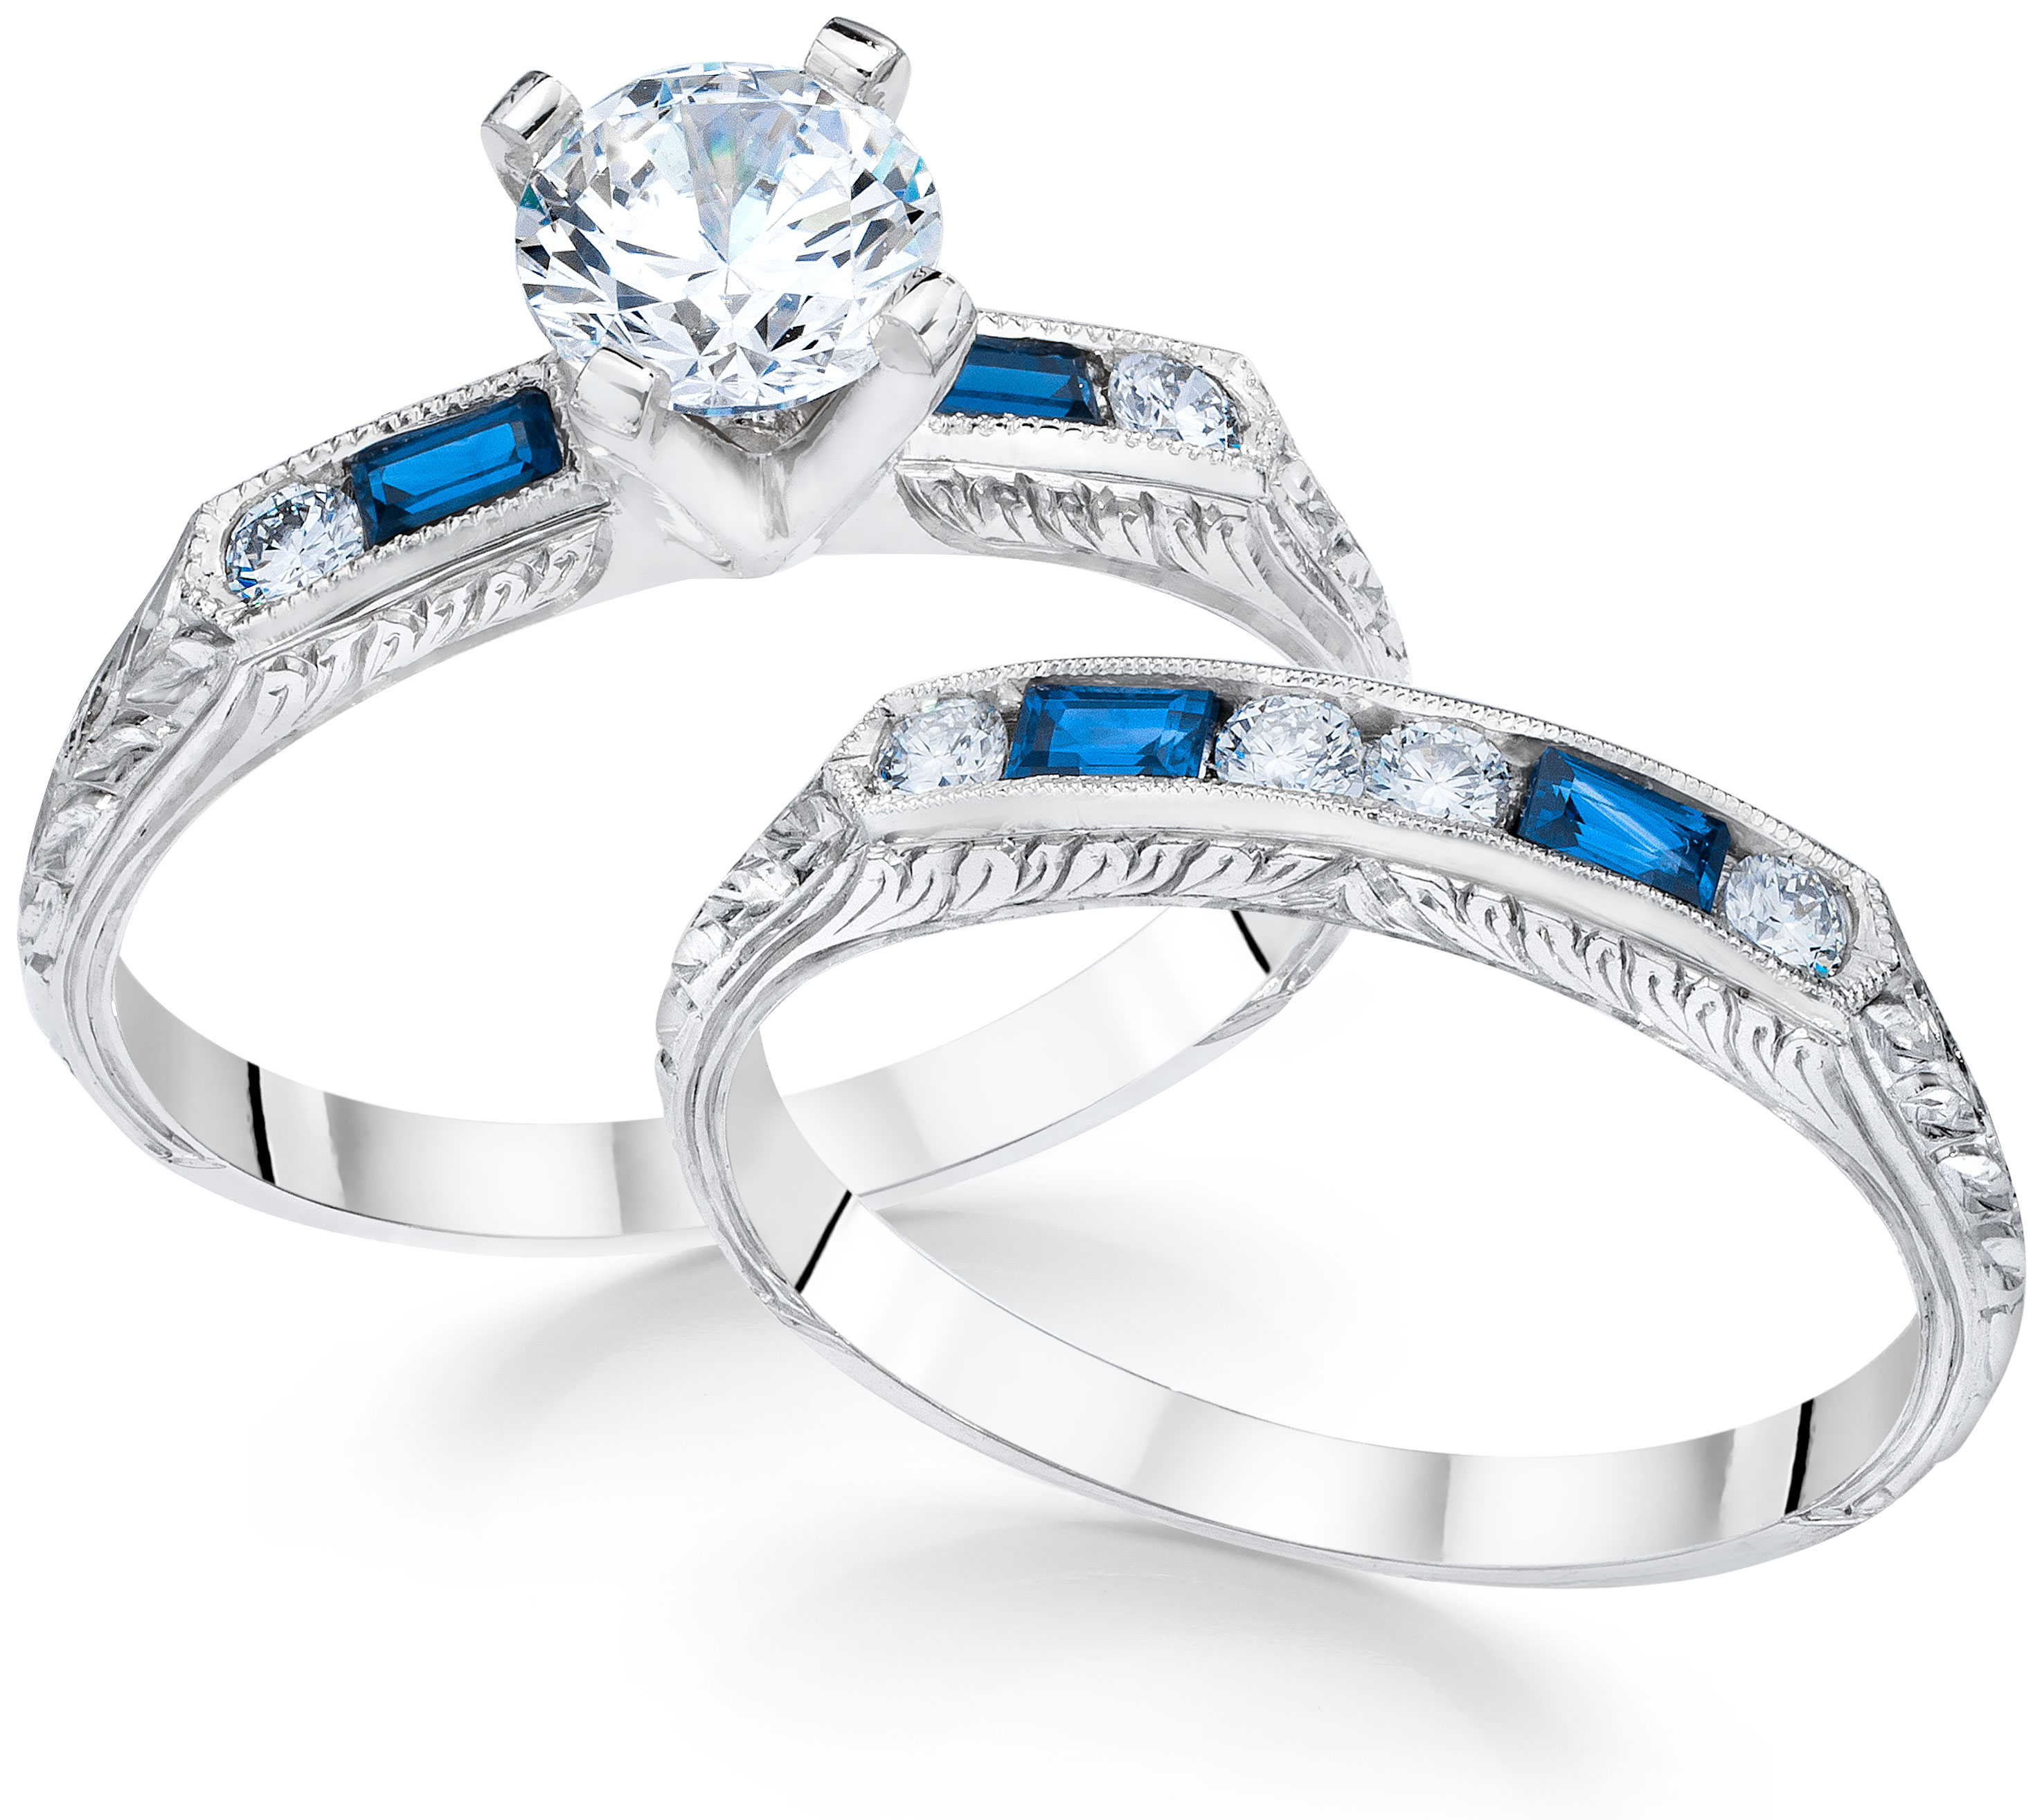 online of gemstone loading rings engagement retailer diamond premier colored add to wishlist